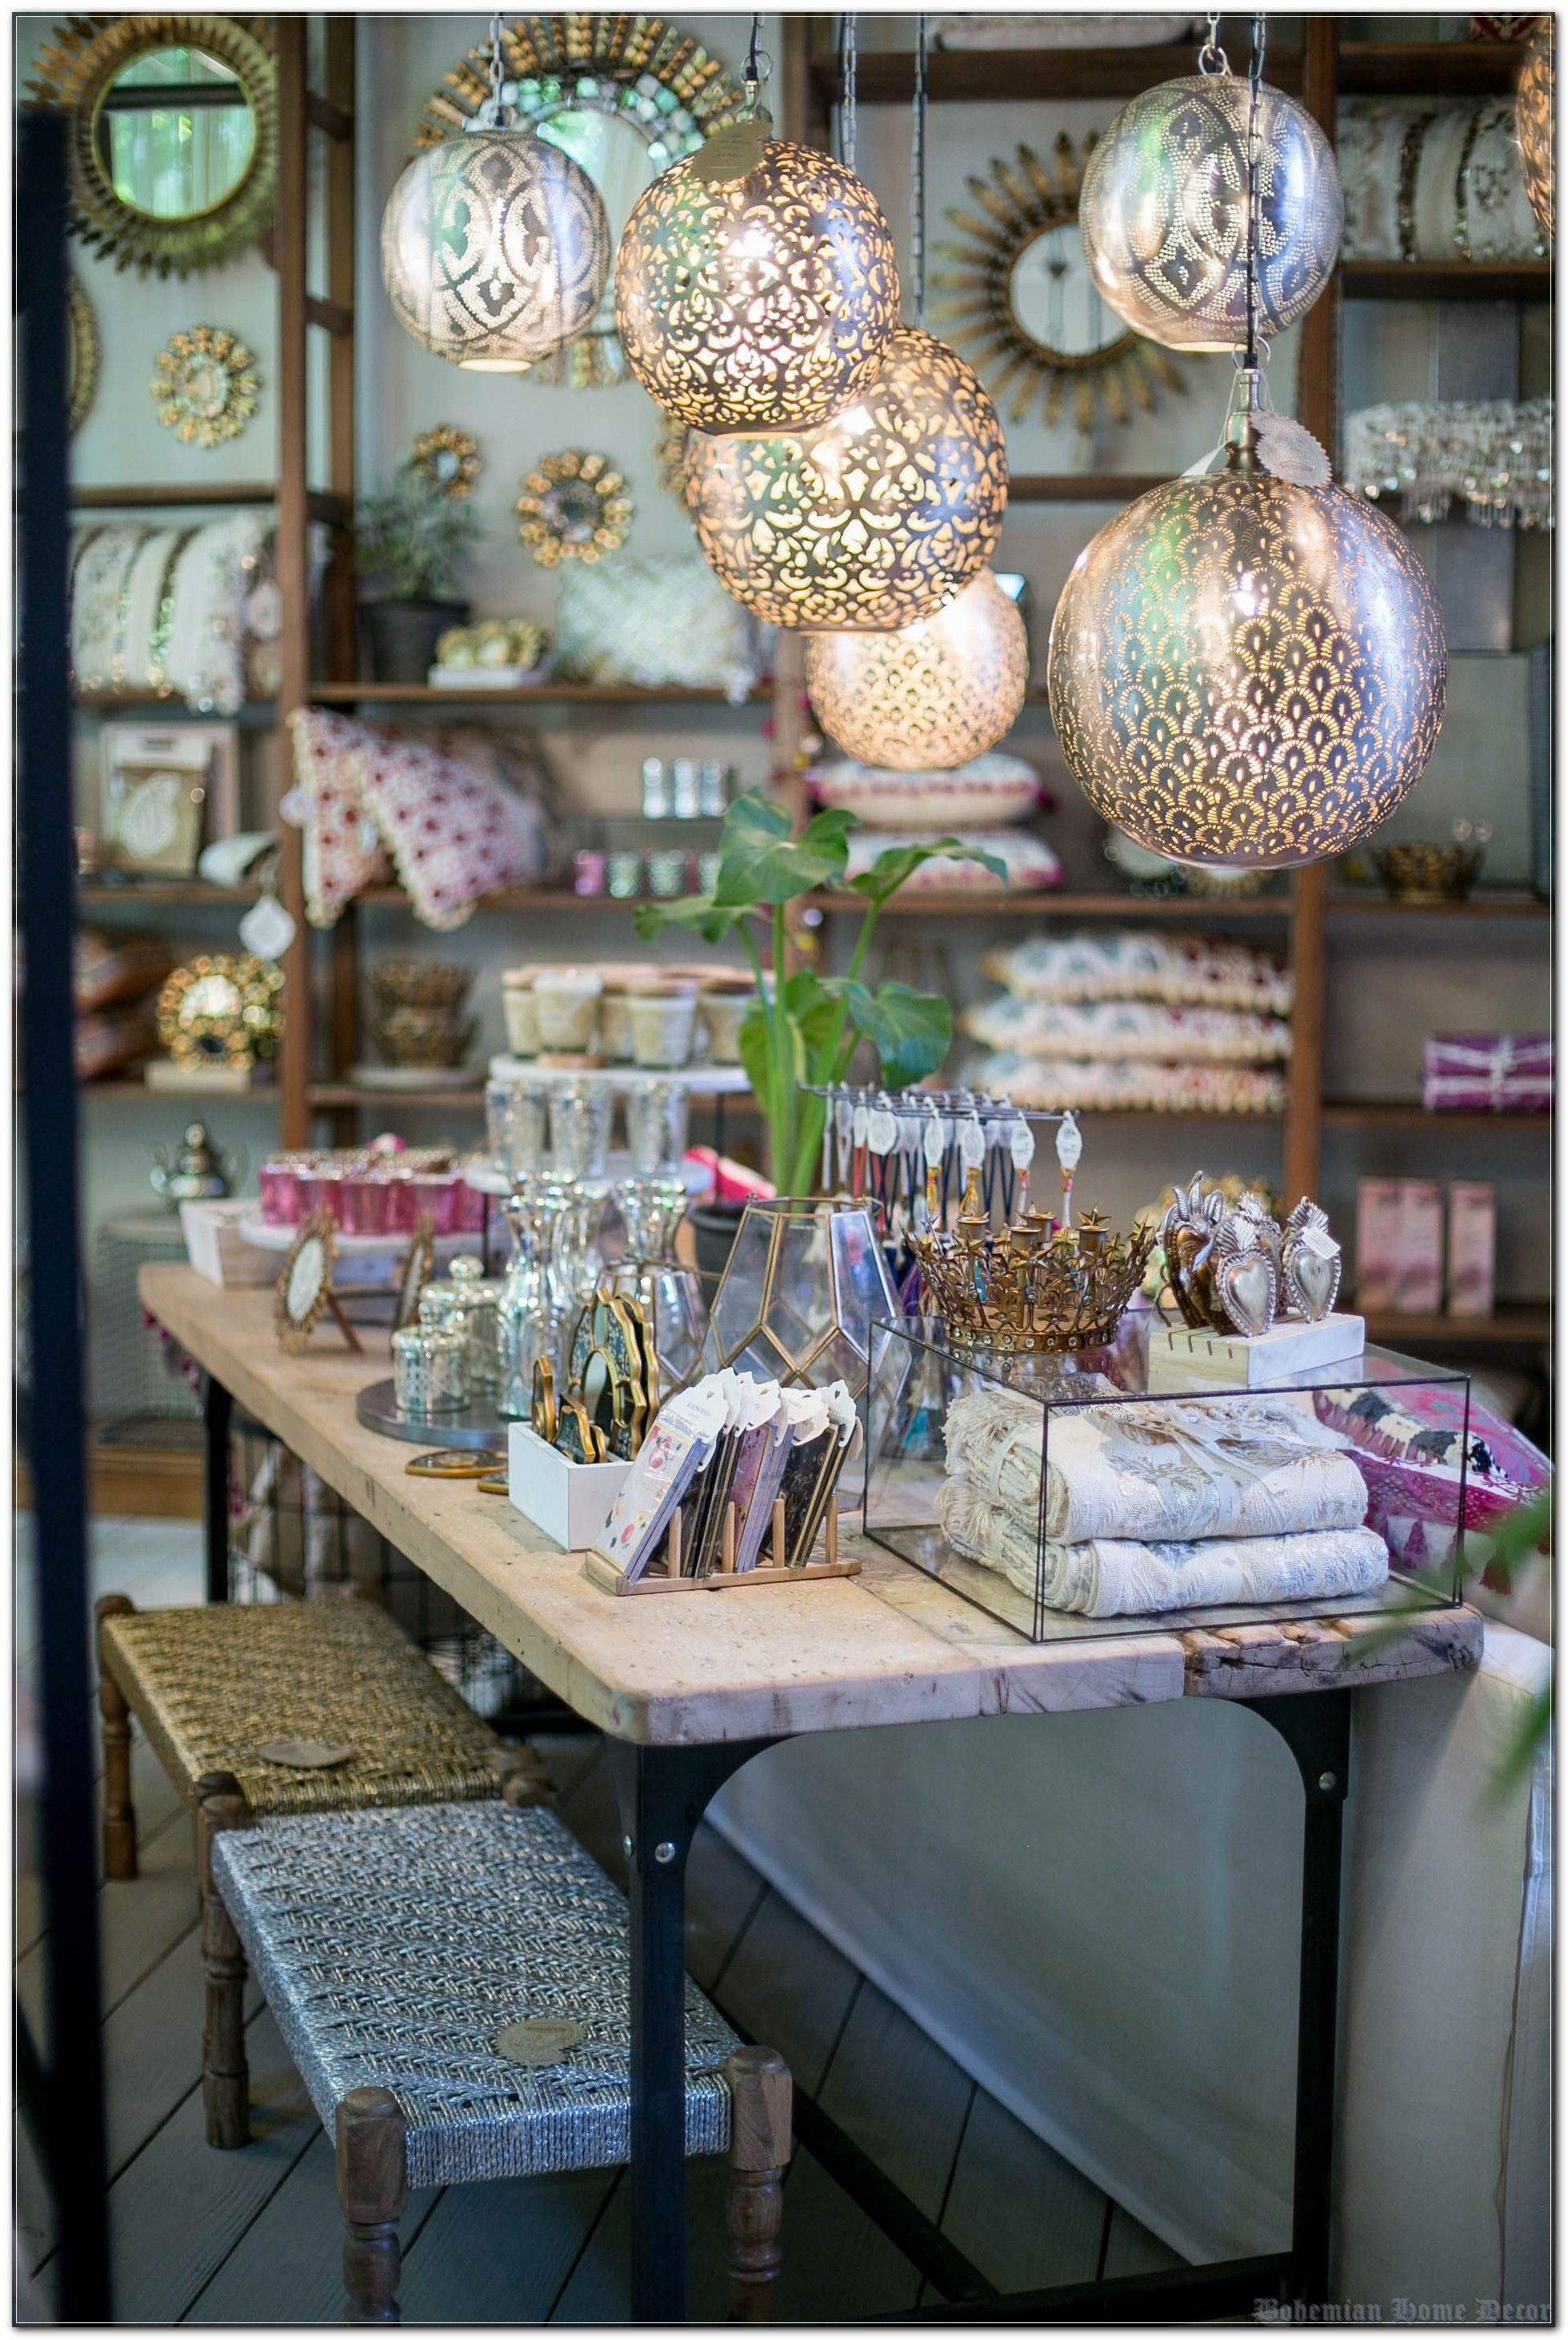 More on Making a Living Off of Bohemian Home Decor